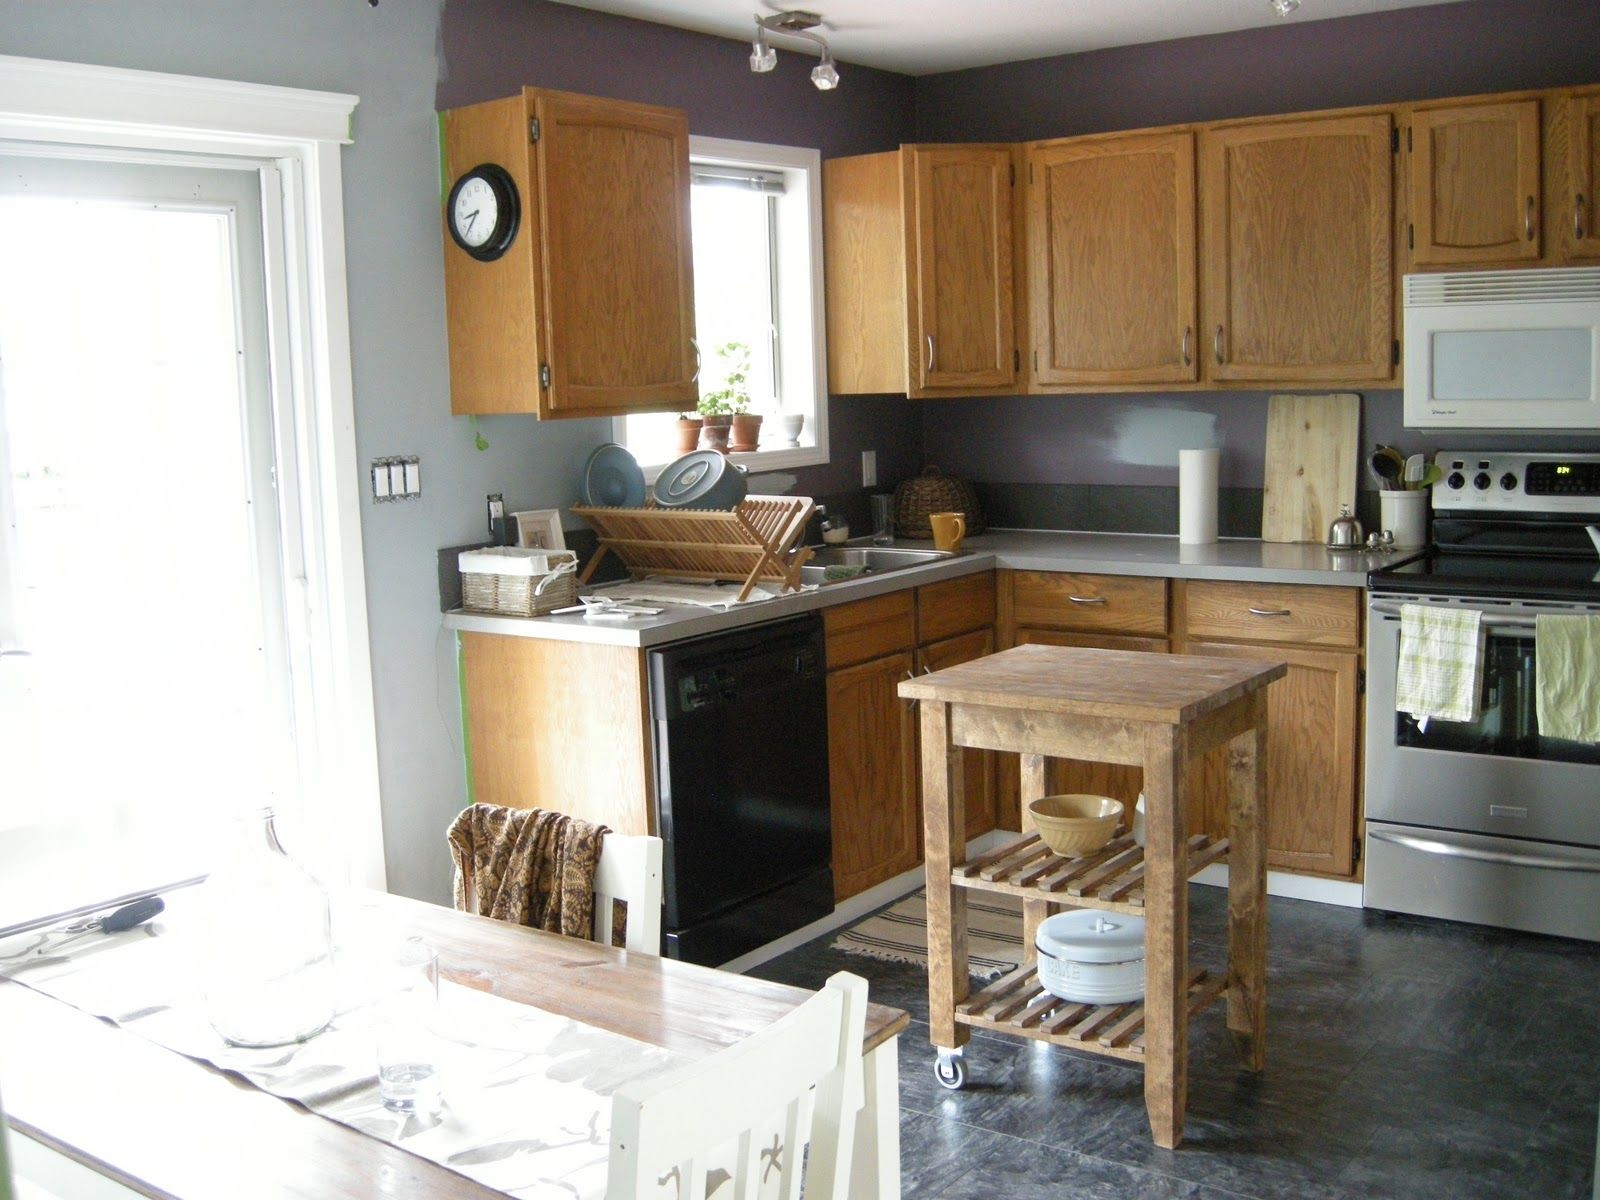 Light Gray Kitchen Walls besf of ideas, kitchen wall colors gray paint decoration yellow